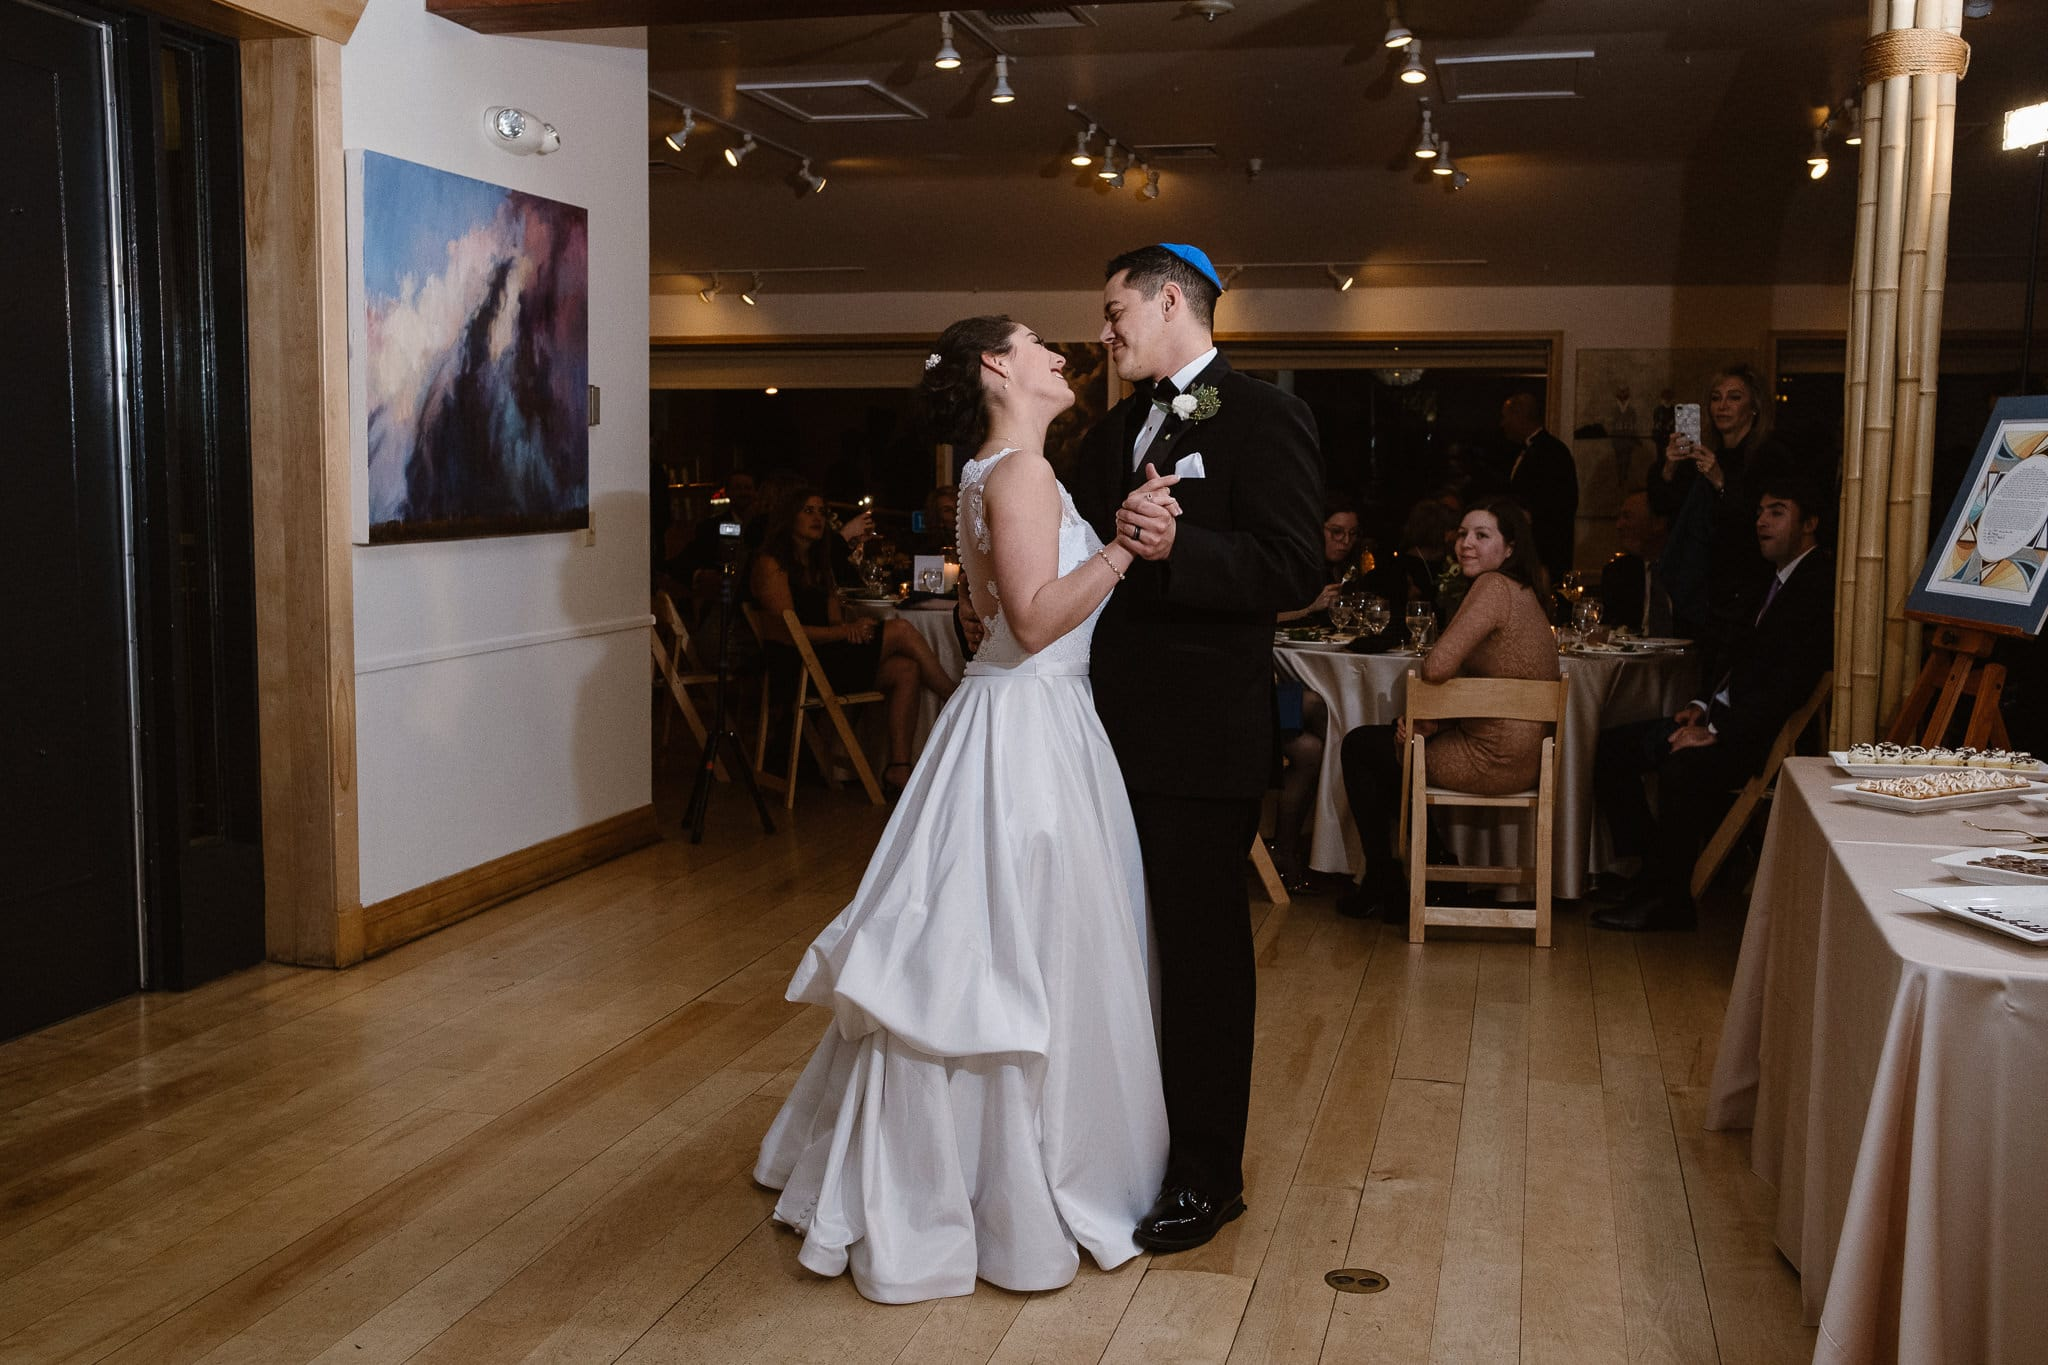 Rembrandt Yard wedding photographer, Boulder wedding photographer, Colorado Jewish wedding, bride and groom first dance